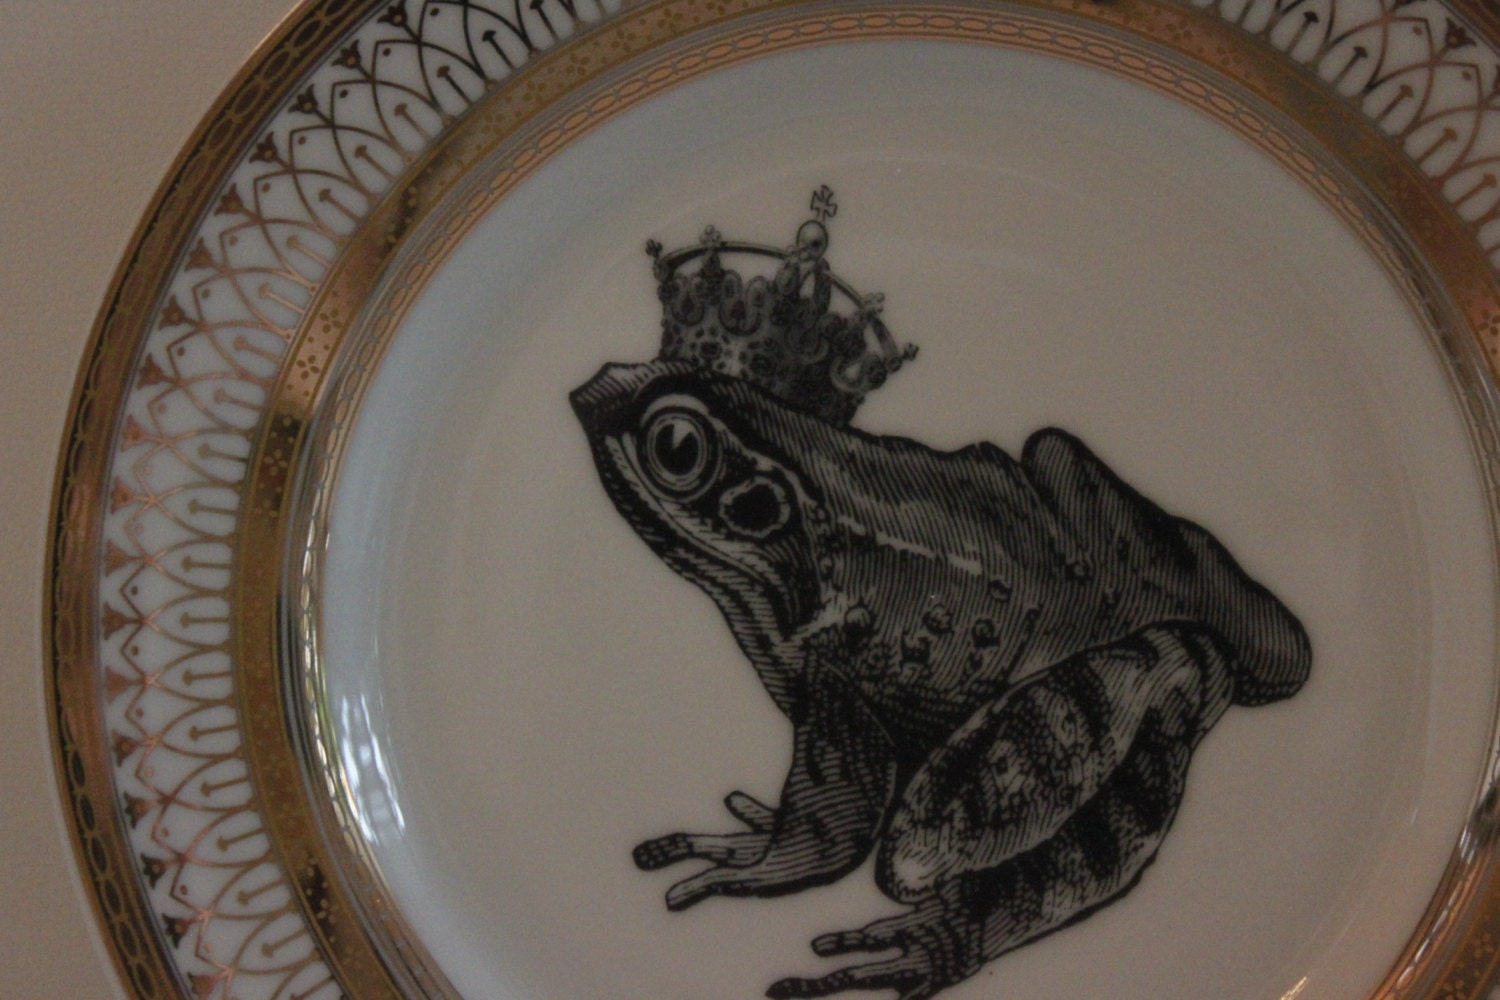 LIST PRICES MAY DIFFER FOR LARGE ORDER QUANTITIES - PLEASE LET US KNOW IF YOU PLAN ON PURCHASING SEVERAL ITEMS COST DECREASES WITH QUANTITY ORDERED. & Foodsafe Frog Toad Gold Silver Dinnerware/Plates/Dishes on